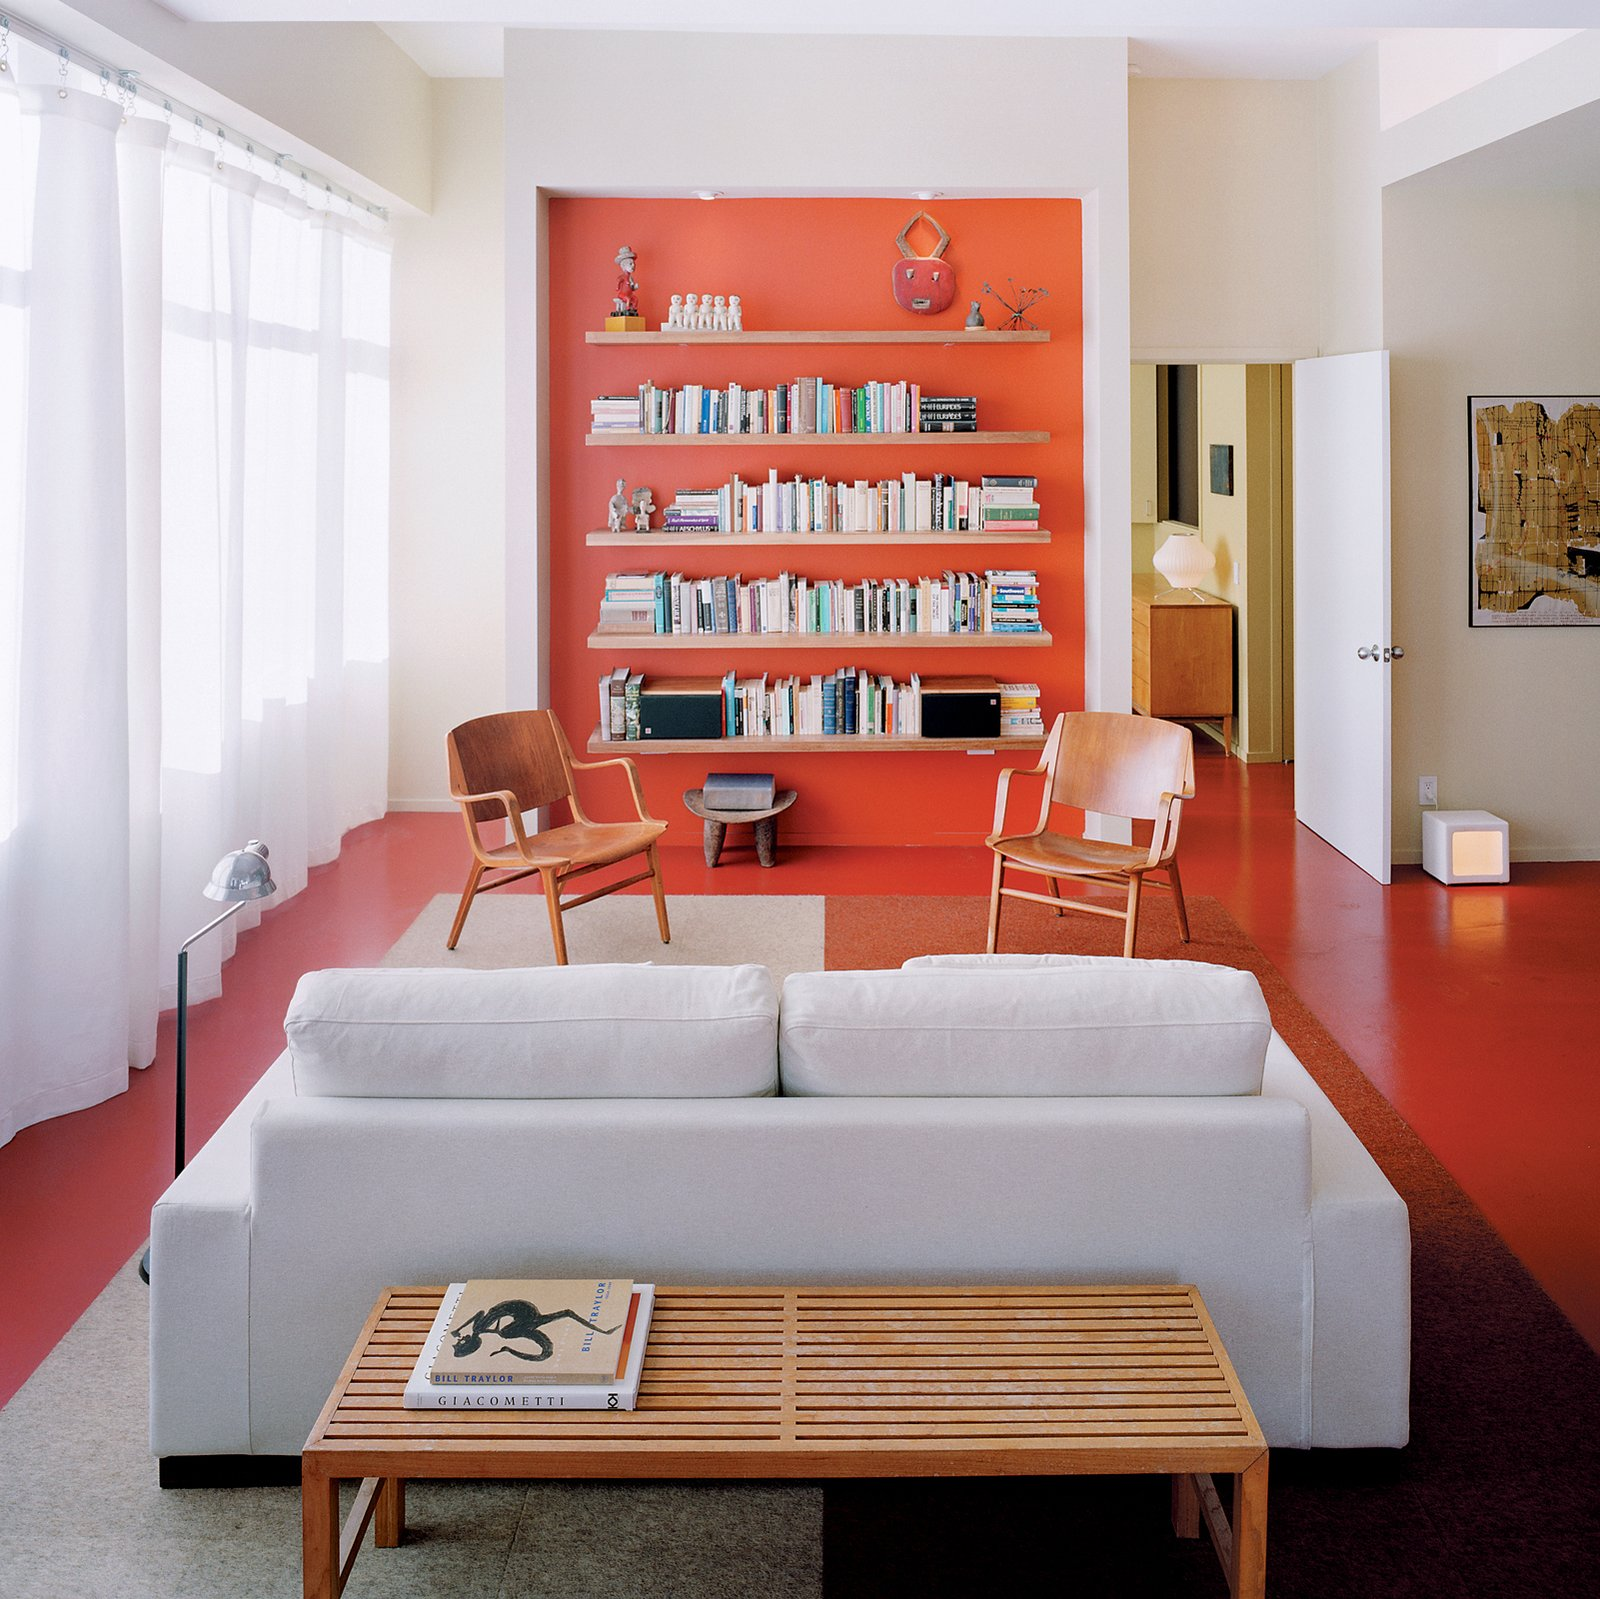 Living Room, Sofa, Chair, and Shelves Architect Grant explains that the recessed orange wall with built-in storage shelving is a counterpoint to the view of Boston in the opposite direction.  Tips for Creating a Comfortable Living Room by Drew McGukin from Urban Usonian